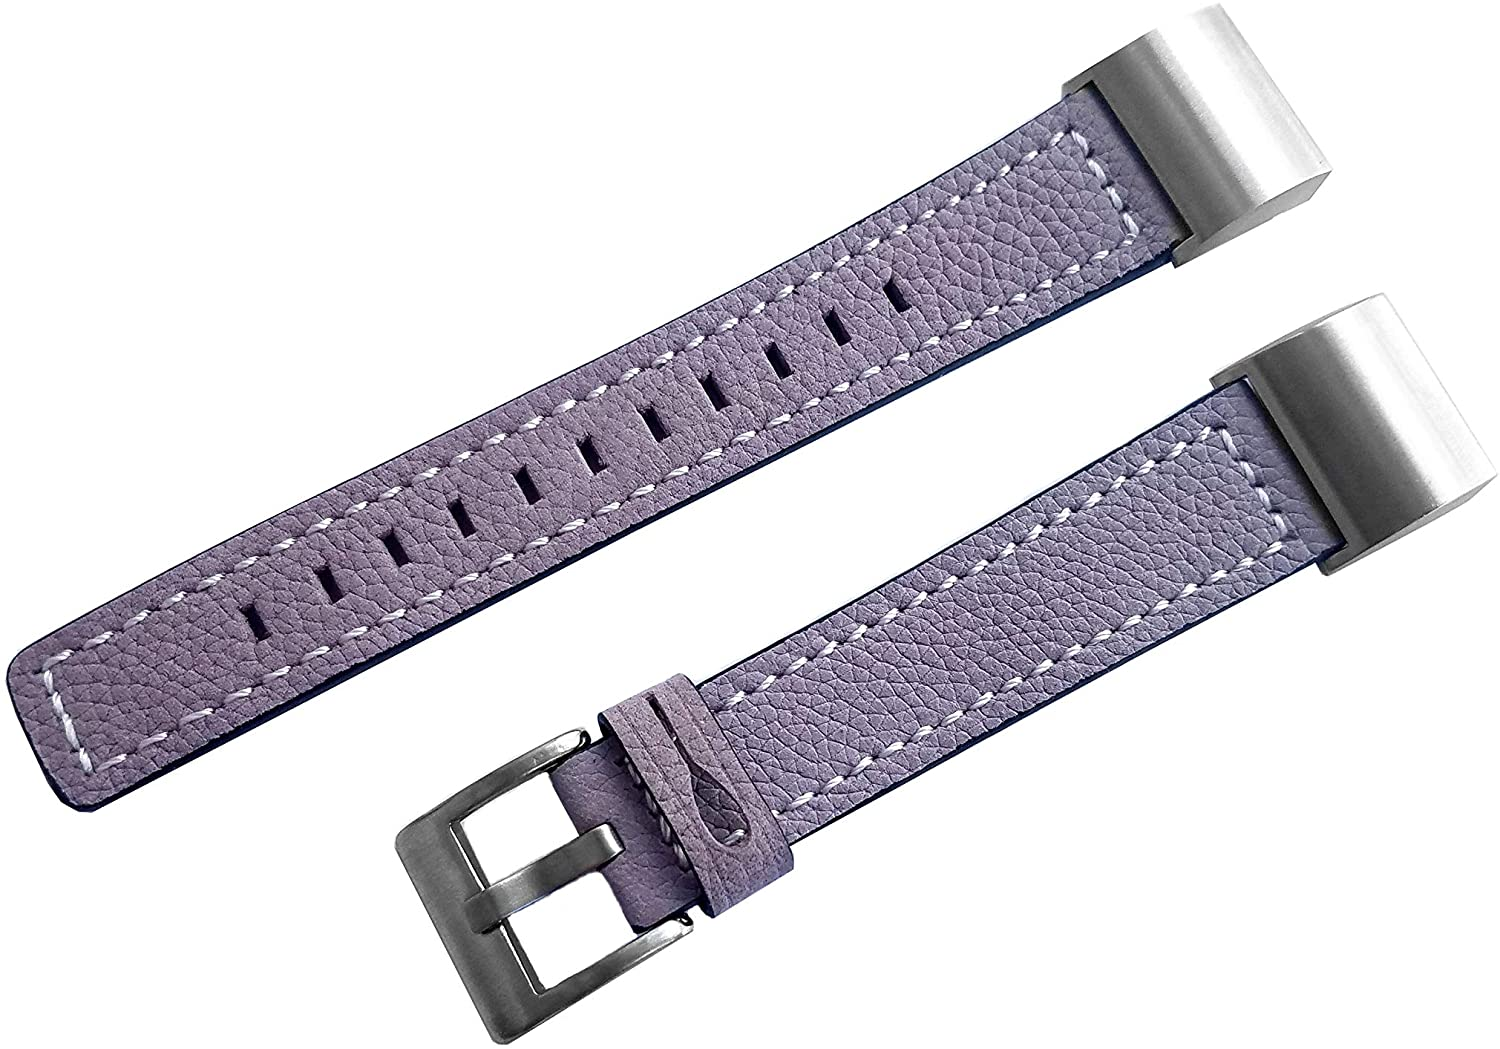 NICKSTON Purple Suede with White Stitches Band Compatible with Fitbit Charge 4, Charge 3 and Charge 2 Tracker Leather Strap (5. Pink Rose Gold Color Buckle Adapters, for Charge 3)